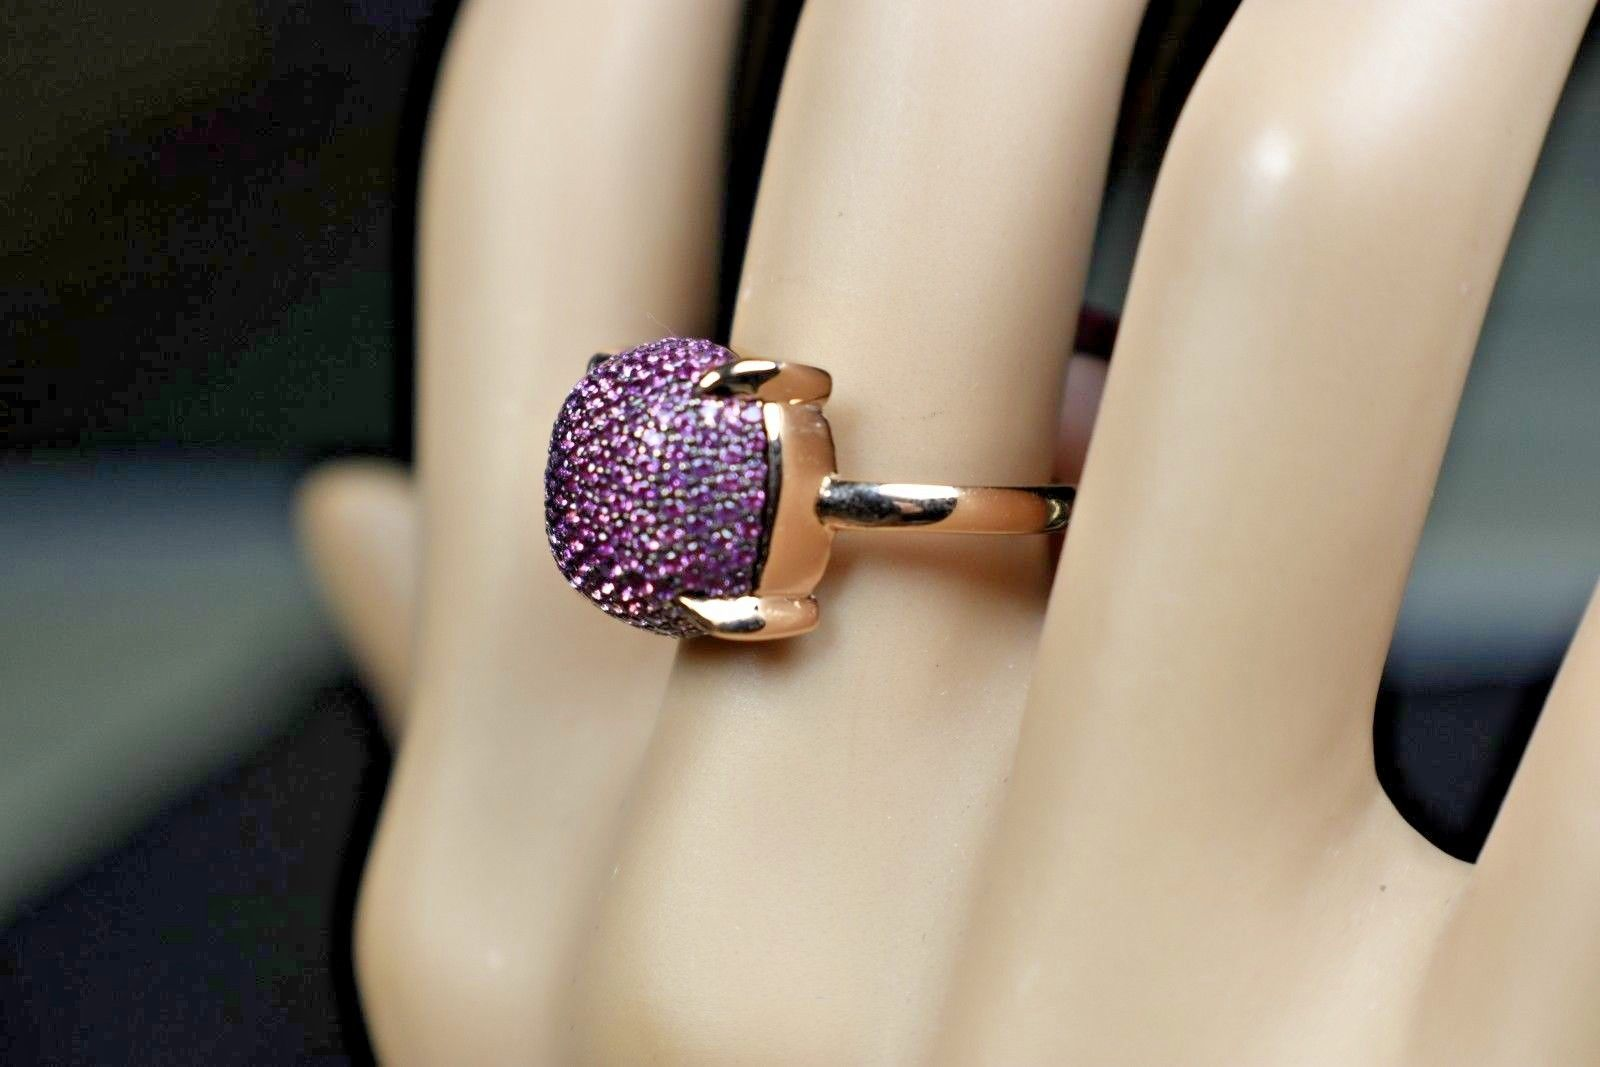 7a3815af4 57. 57. Previous. Tiffany & Co Picasso Sugar Stacks Pink Sapphire Pave' Ring  18K Gold MINT ($5000. Tiffany ...